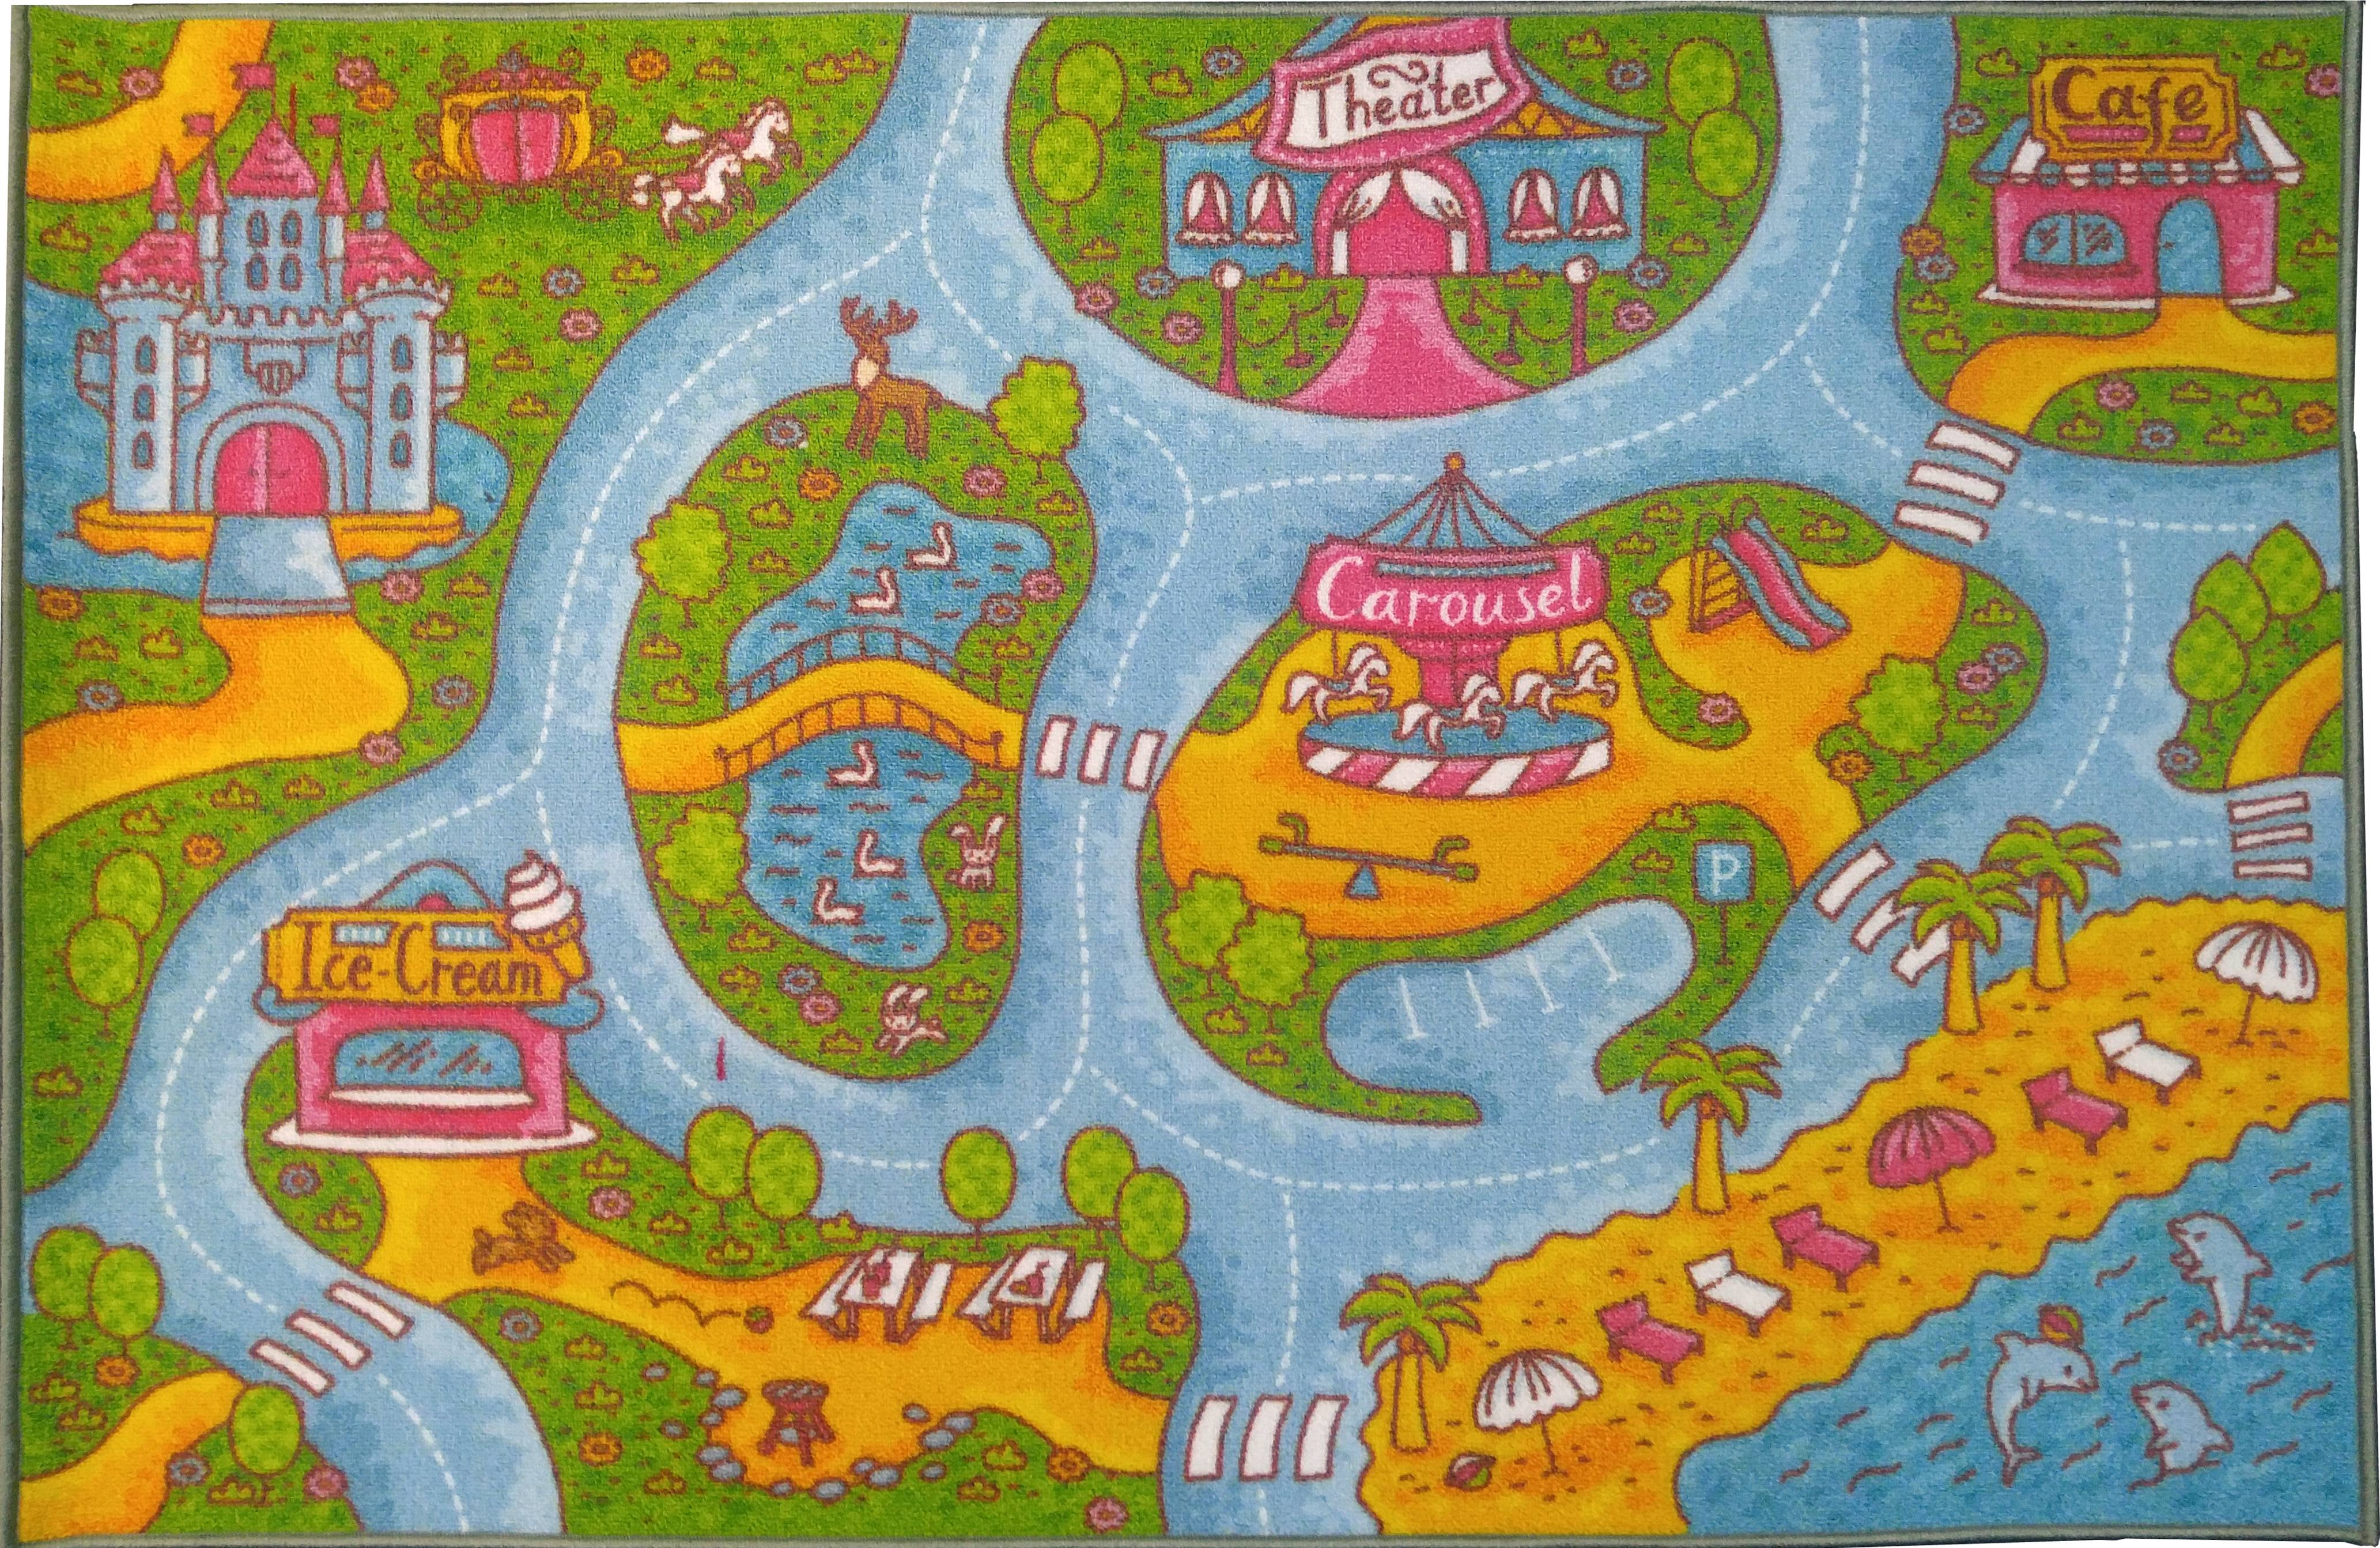 "KC Cubs Playtime Collection Girls Road Map Multicolor Polypropylene Educational Area Rug (8'2"" x... by Kev and Cooper LLC"